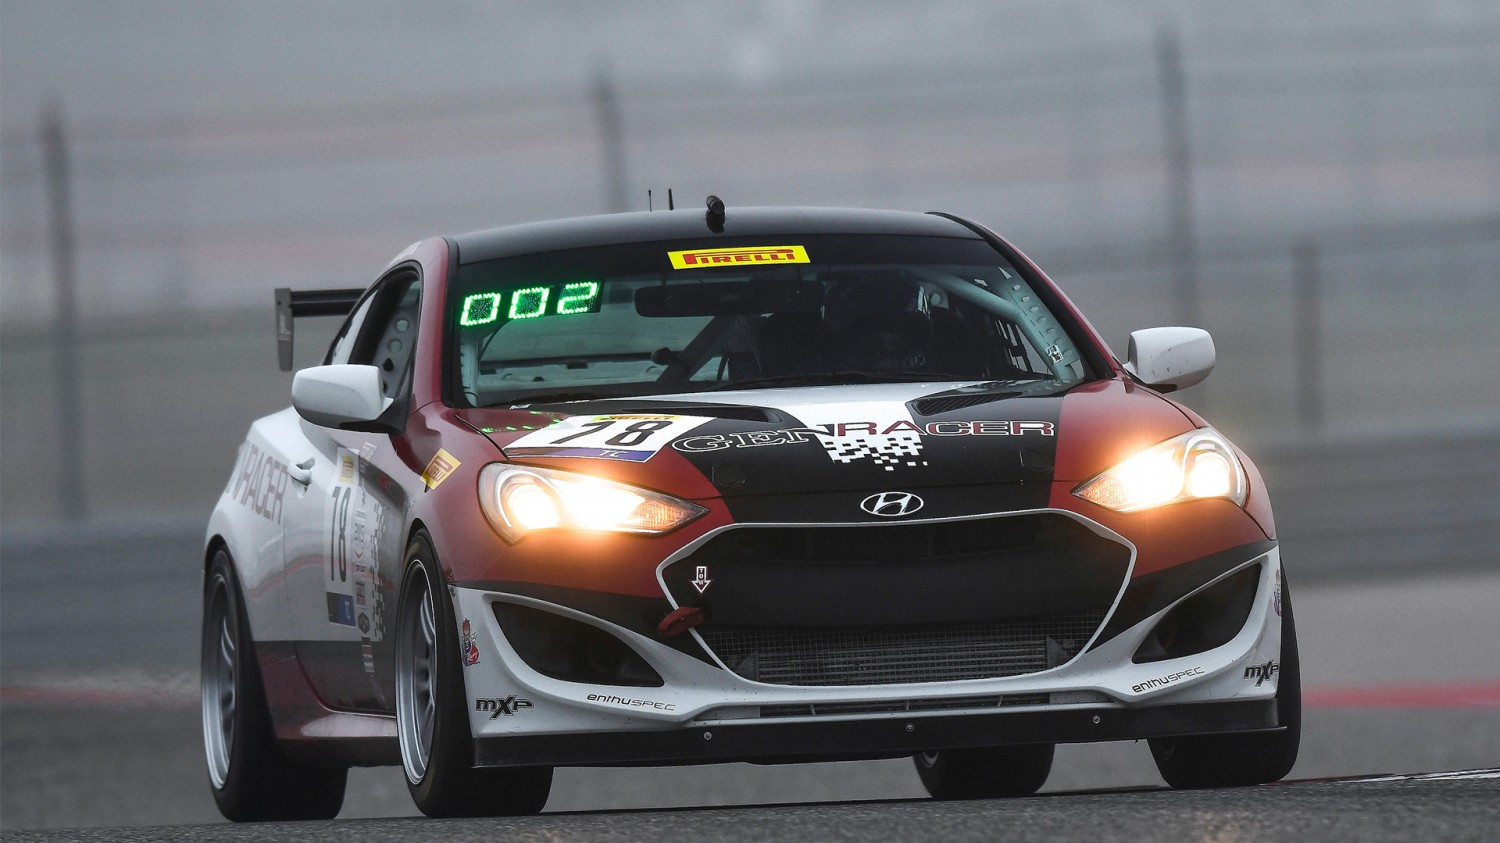 Ricca, Schwartz Take Front Row for TC America TC Round 1 Competition